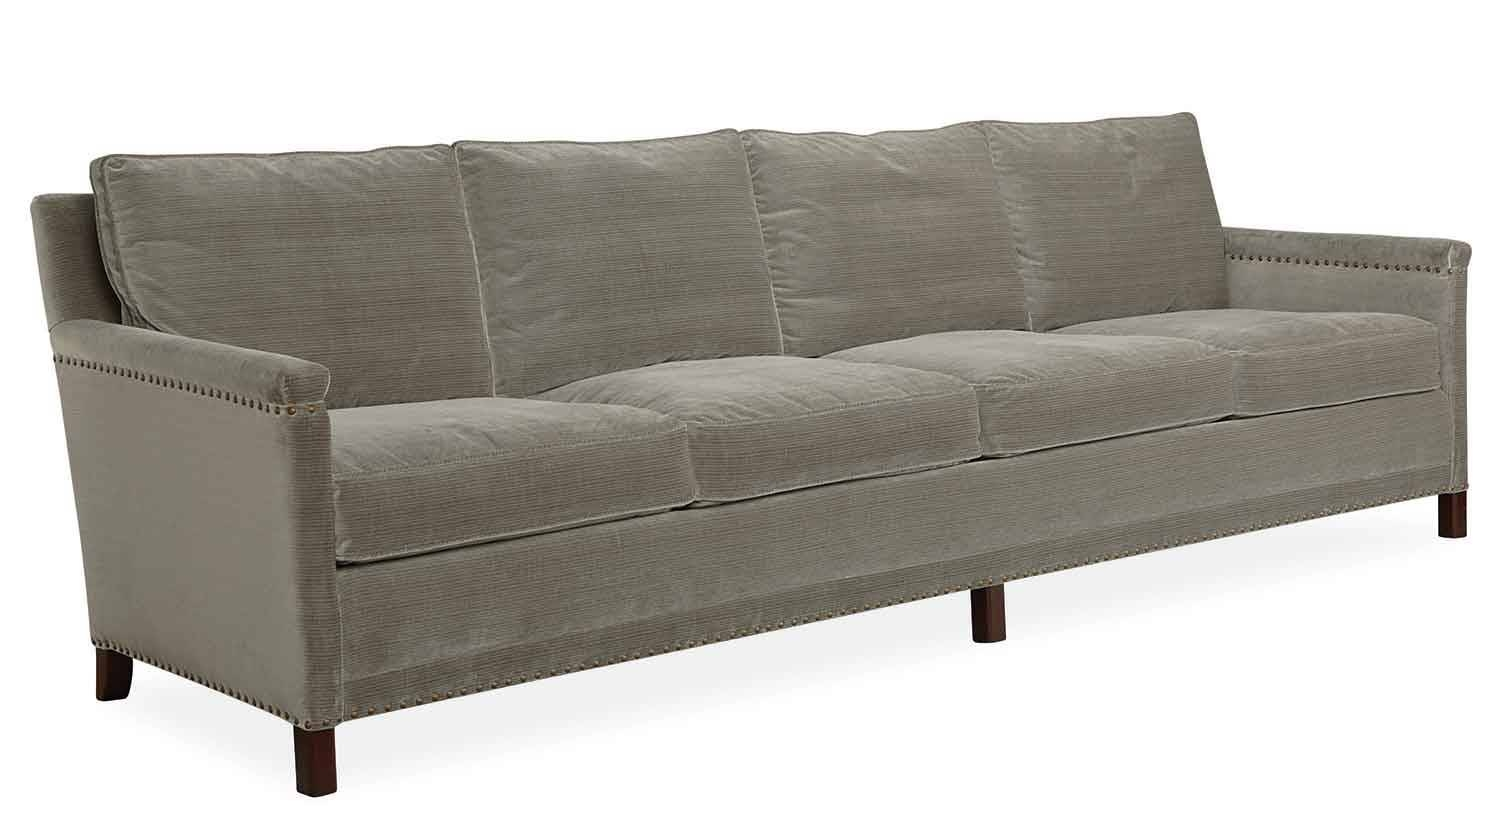 Circle Furniture - Paige 4 Seat Sofa | Sofas Acton | Circle Furniture with Four Seat Sofas (Image 13 of 30)